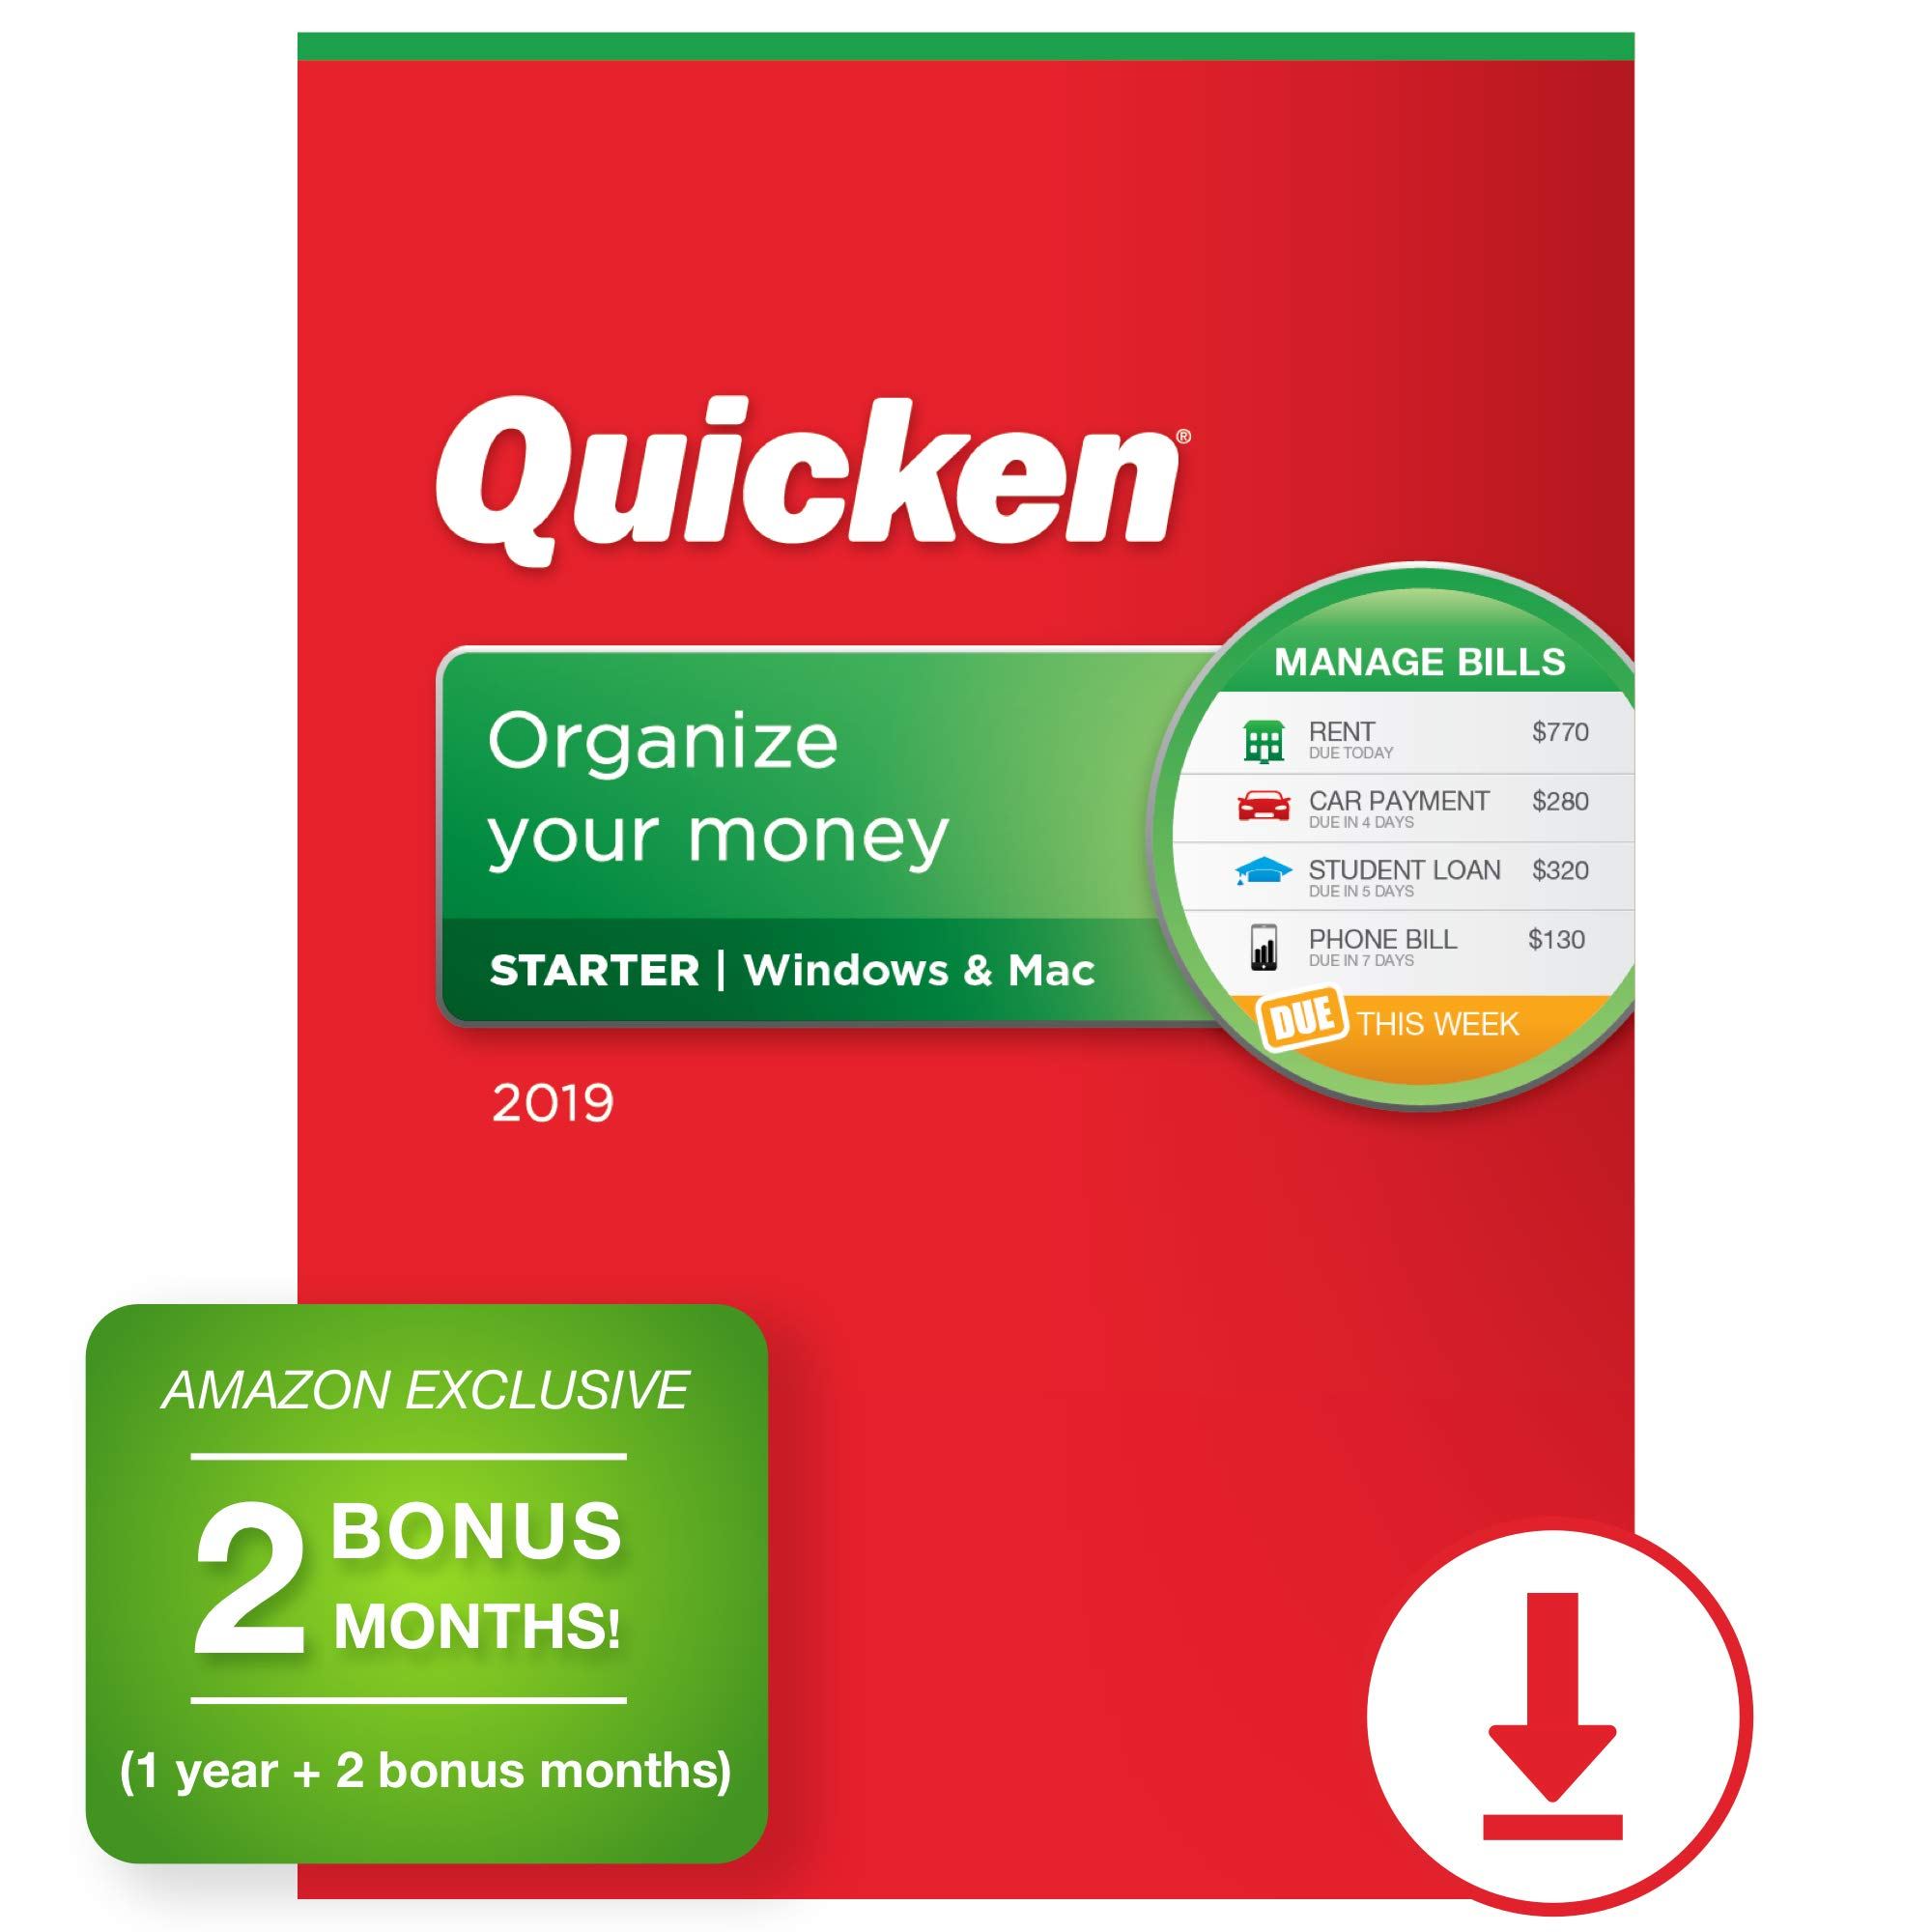 Quicken Starter 2019 Personal Finance Software [PC/Mac Download] 1-Year Subscription + 2 Bonus Months [Amazon Exclusive] by Quicken